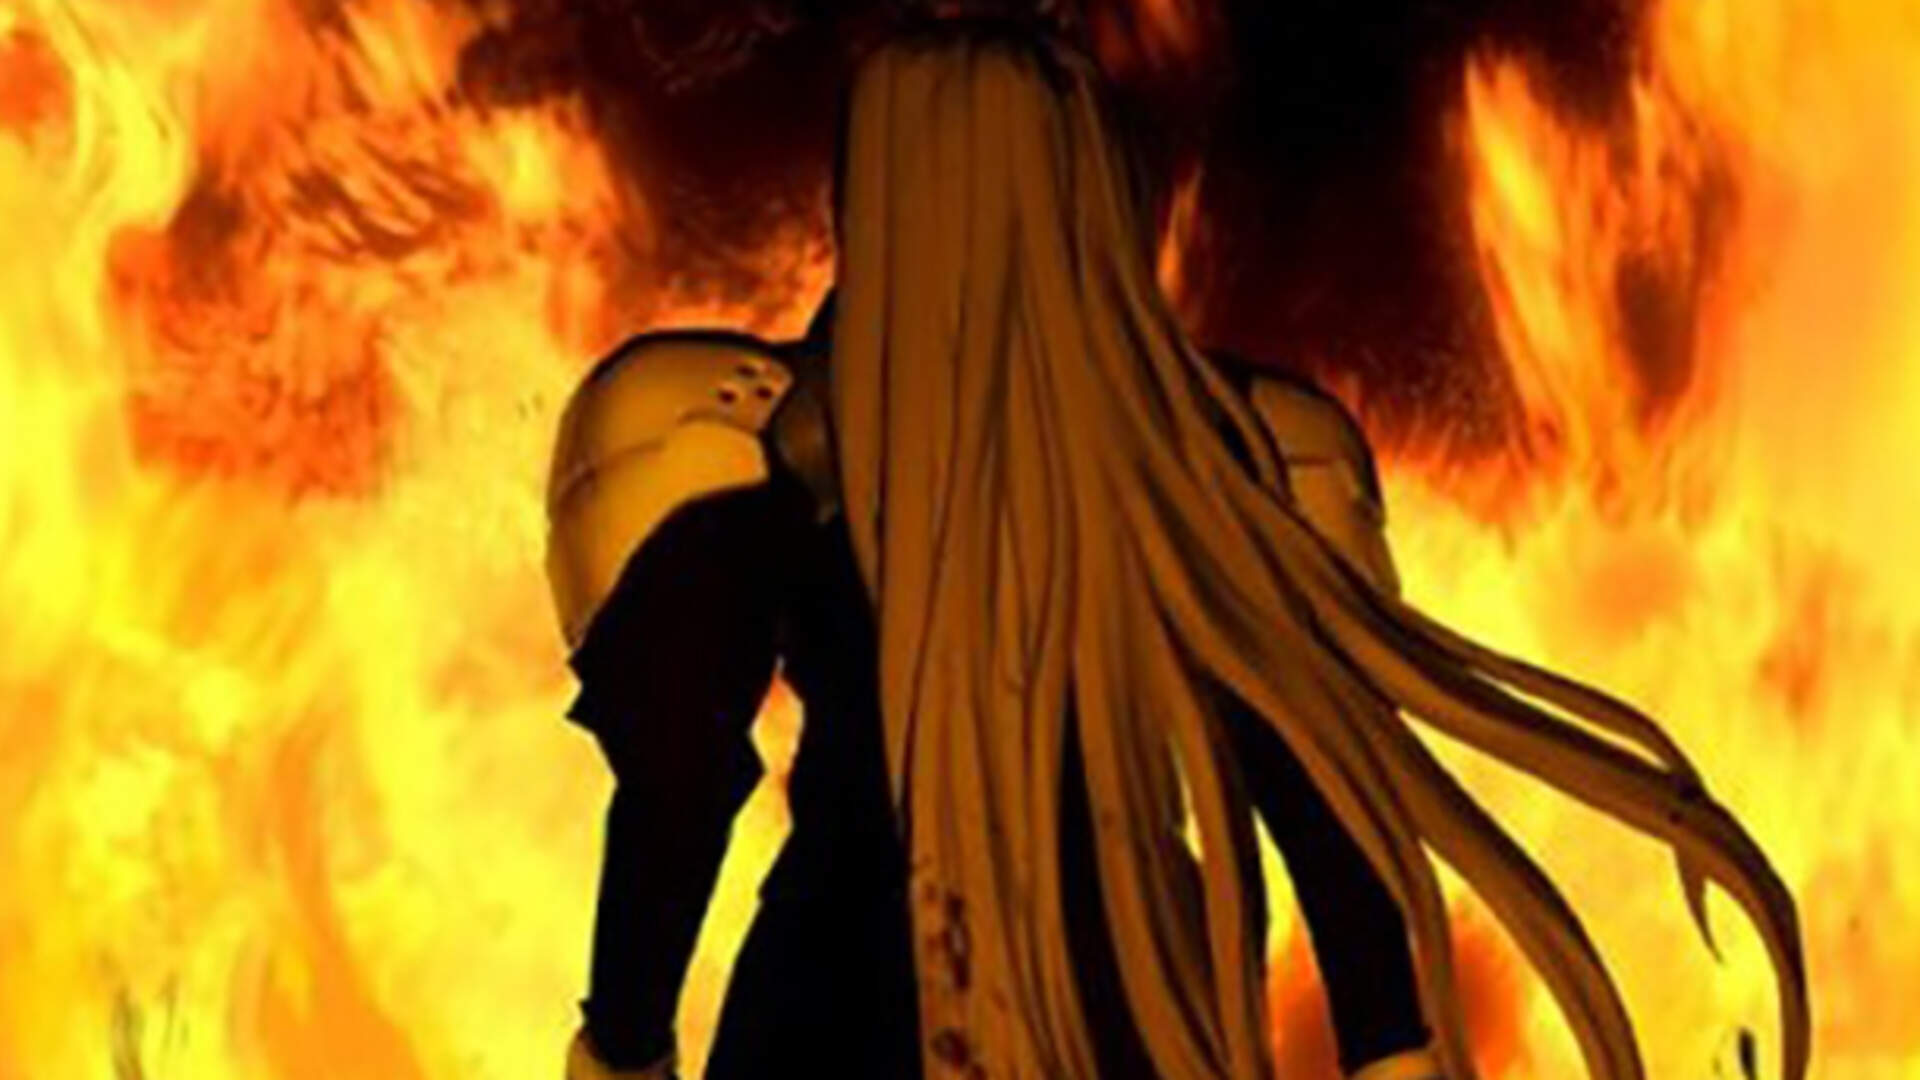 Final Fantasy Vii Deep Dive Part 4 Sephiroth Skewered Our